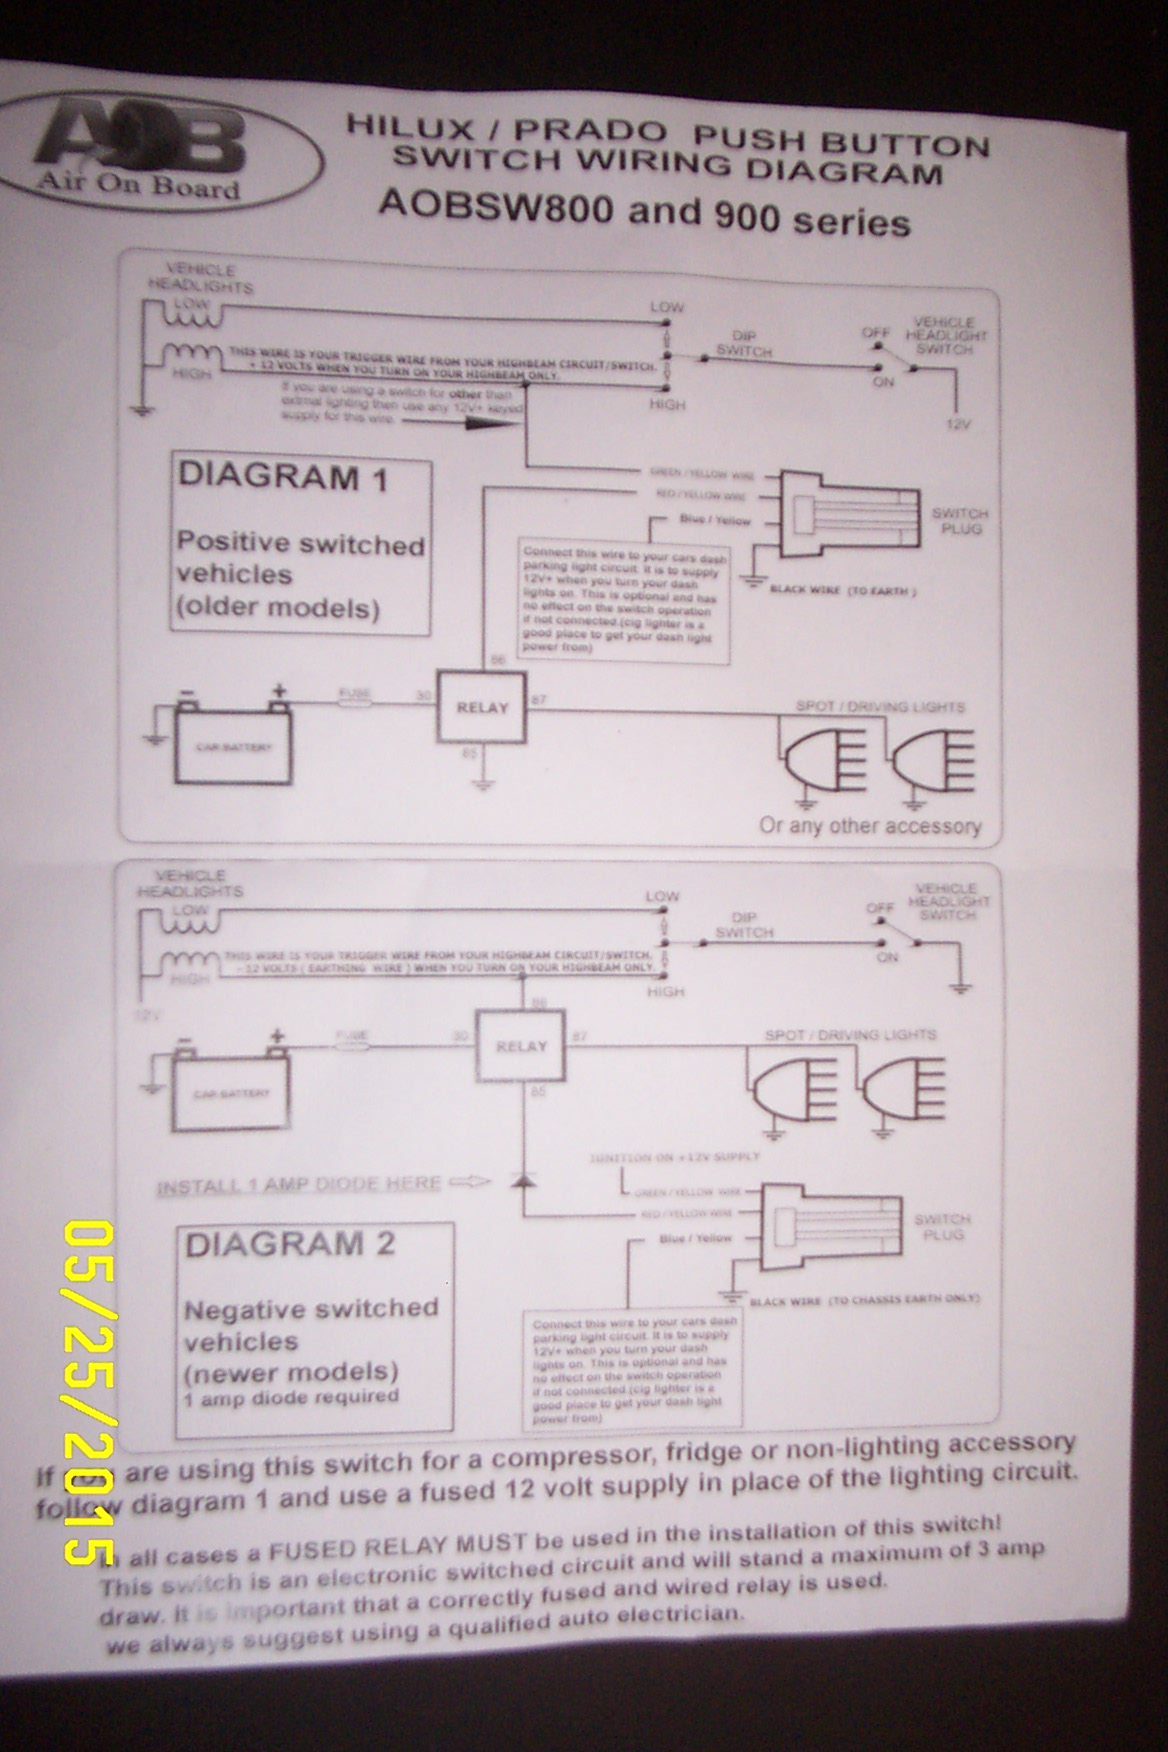 tail lift switch wiring diagram wiring diagrams tail lift switch wiring diagram digital